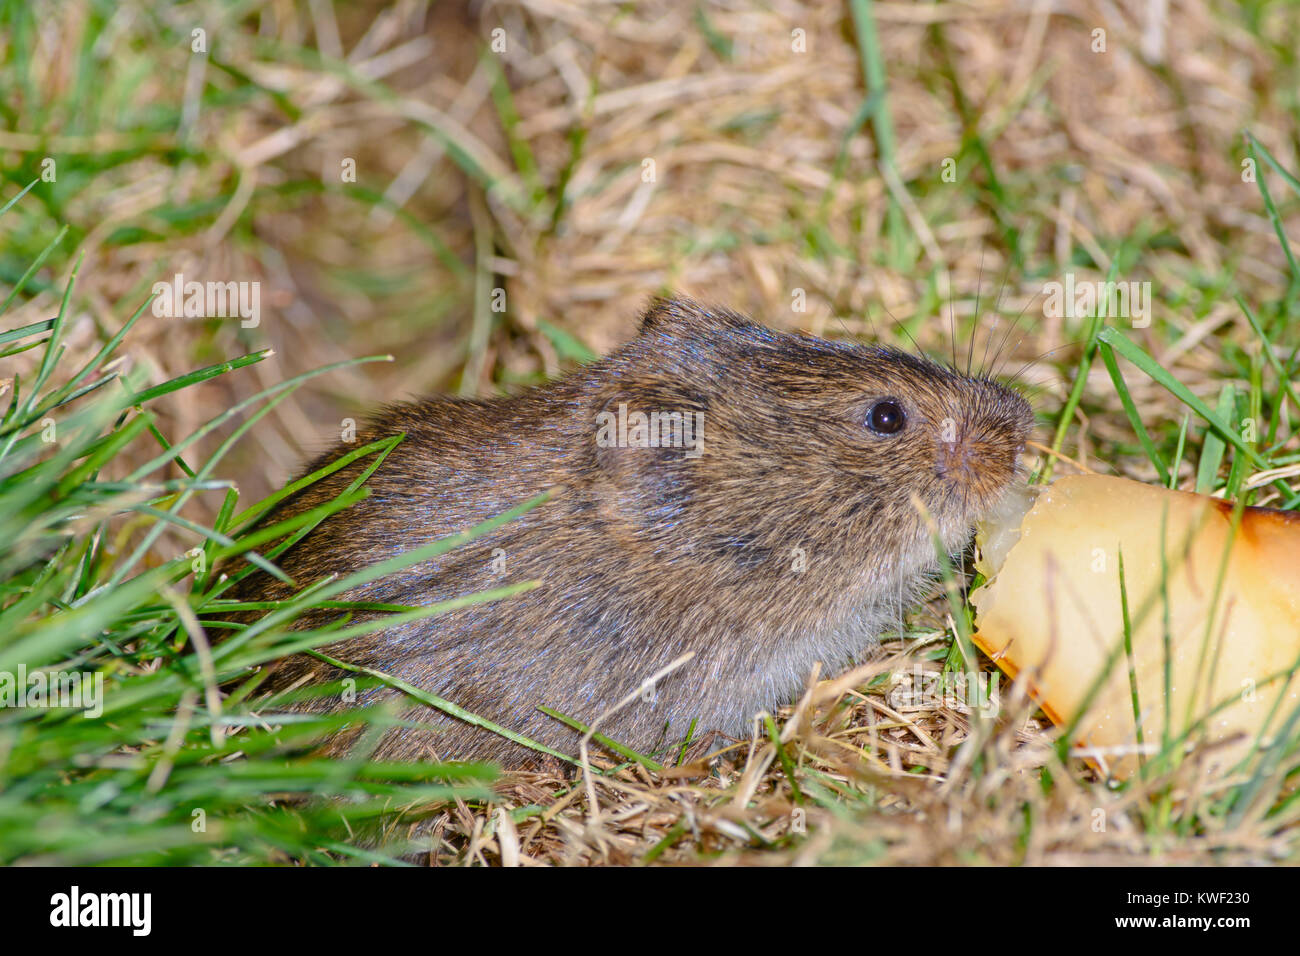 Meadow Vole eating piece of pear fruit near it's grassy runway, Colorado US - Stock Image